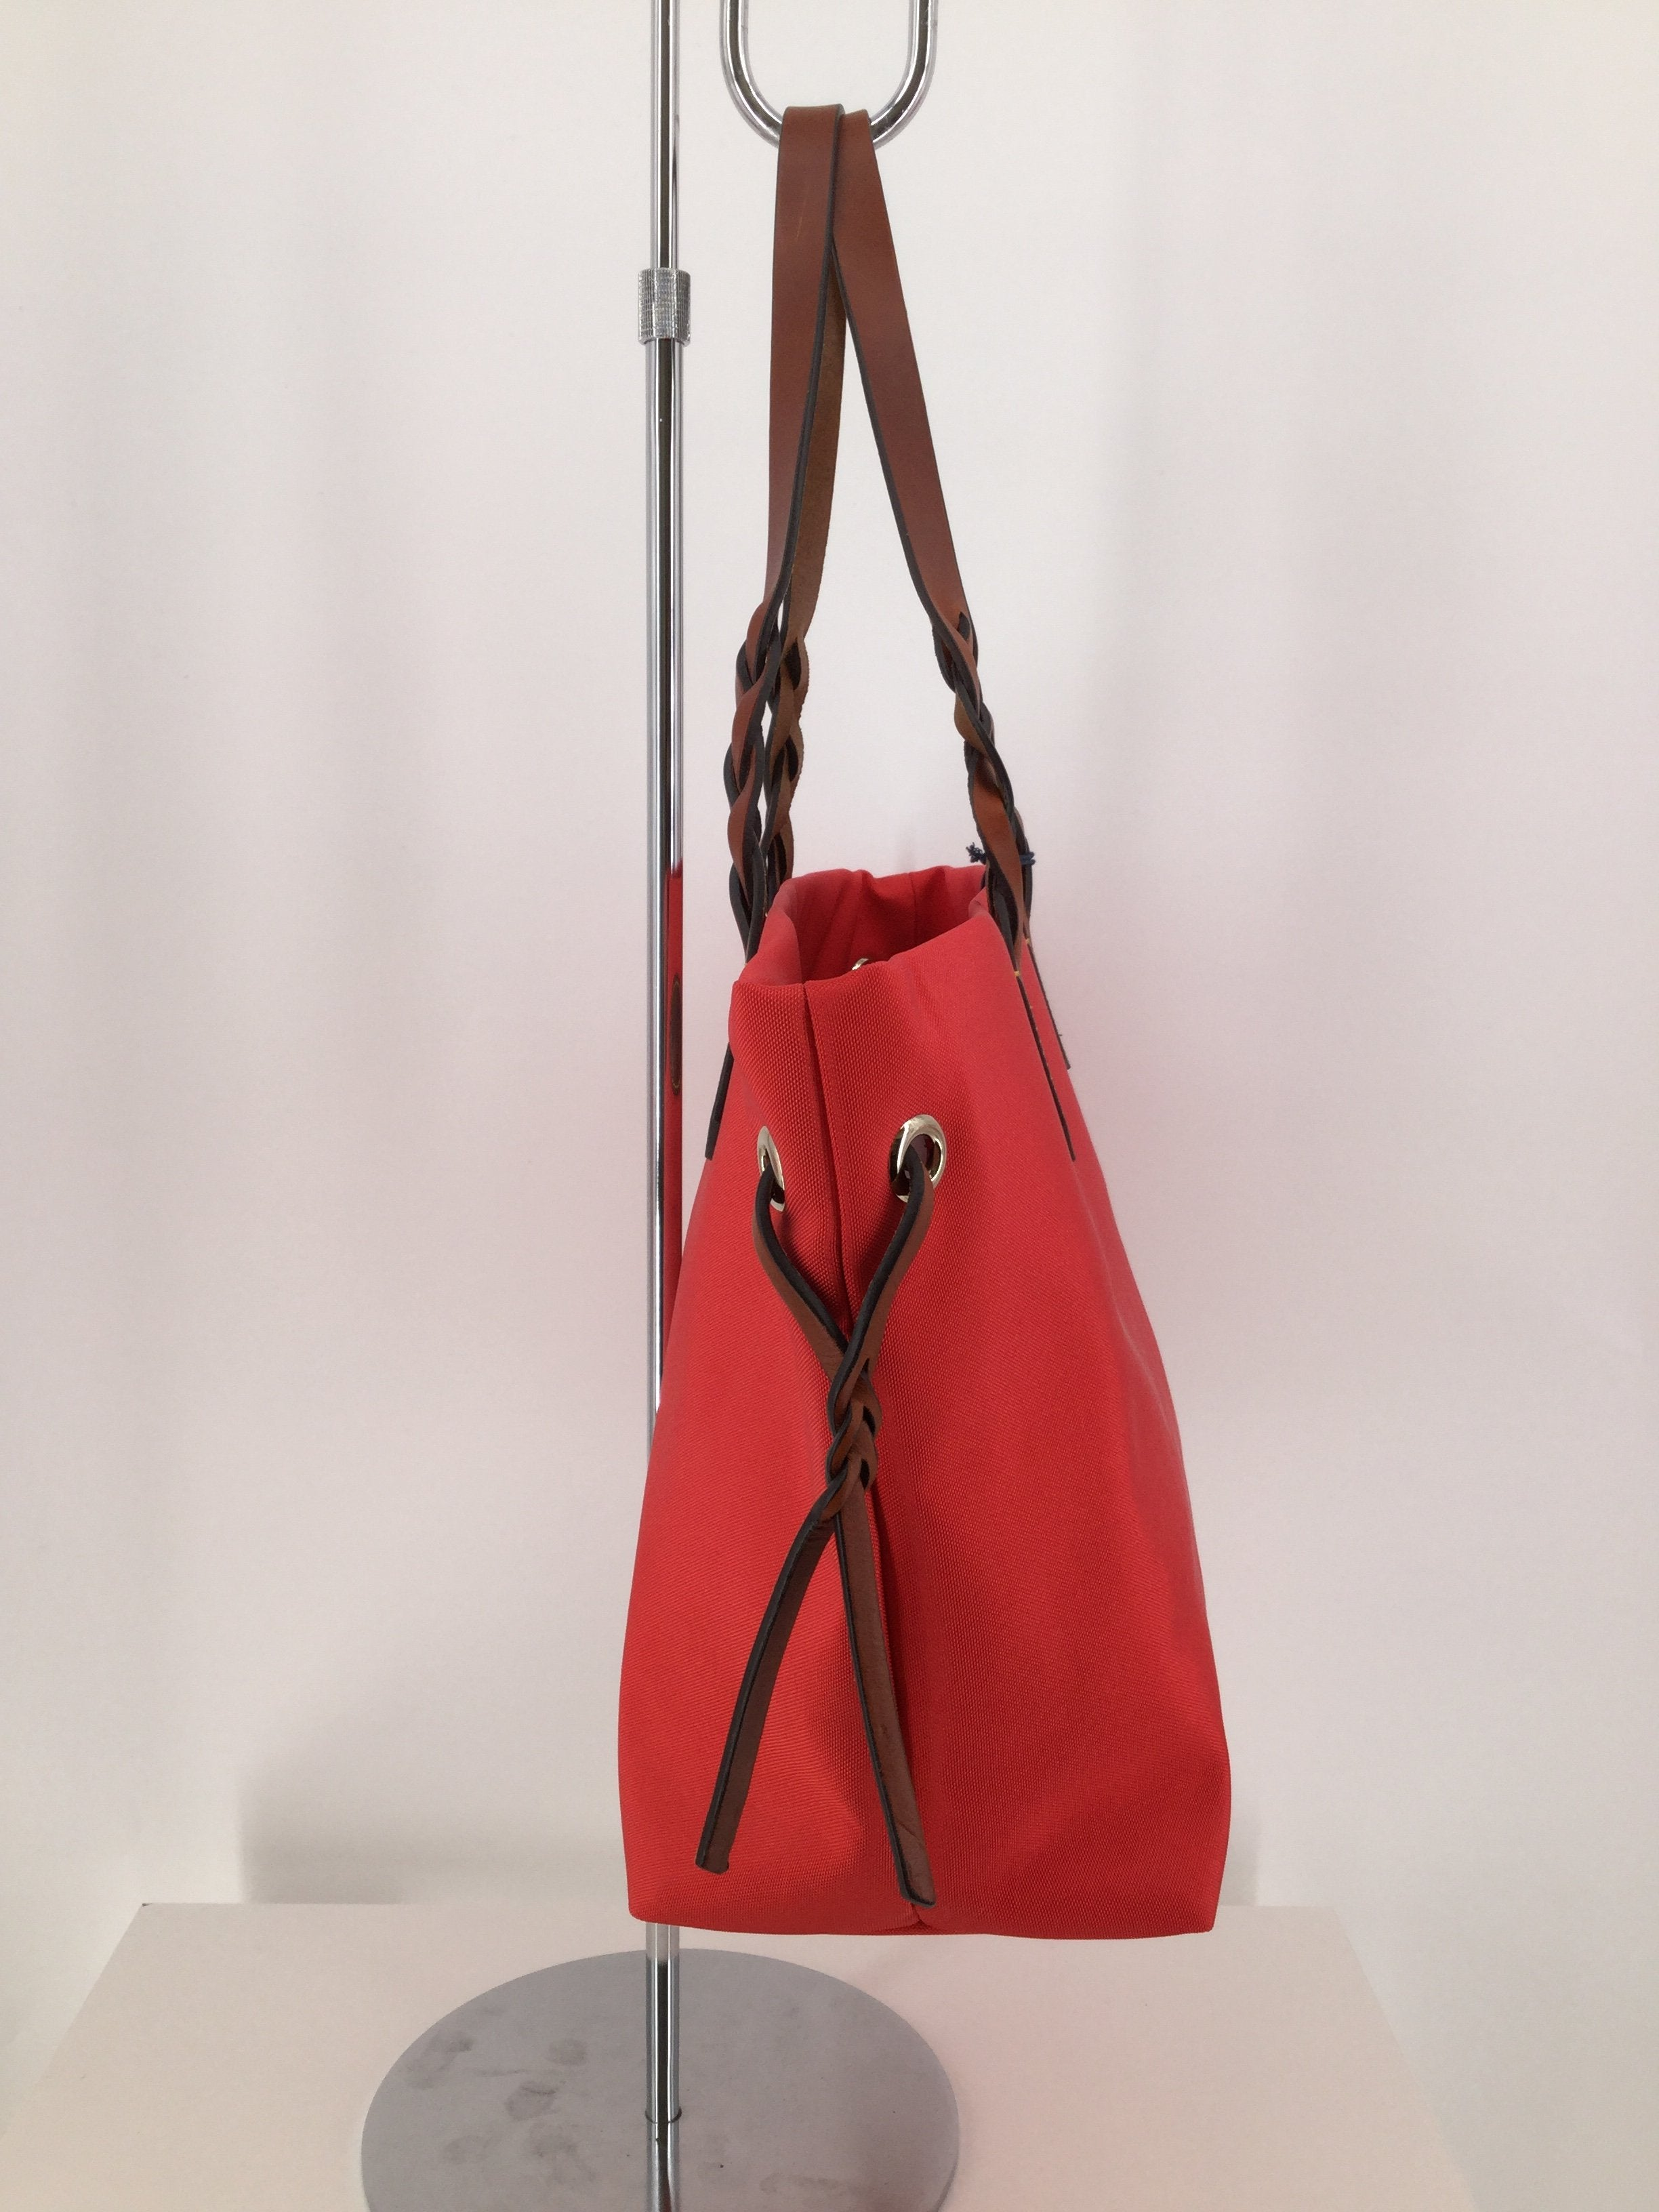 Dooney And Bourke, Strawberry Red, Size Large - <P>BEAUTIFUL STRAWBERRY RED DOONEY AND BOURKE. MEASURES 12 INCHES TALL AND 18 INCHES WIDE. LIKE NEW CONDITION, (SEE PHOTOS).</P>